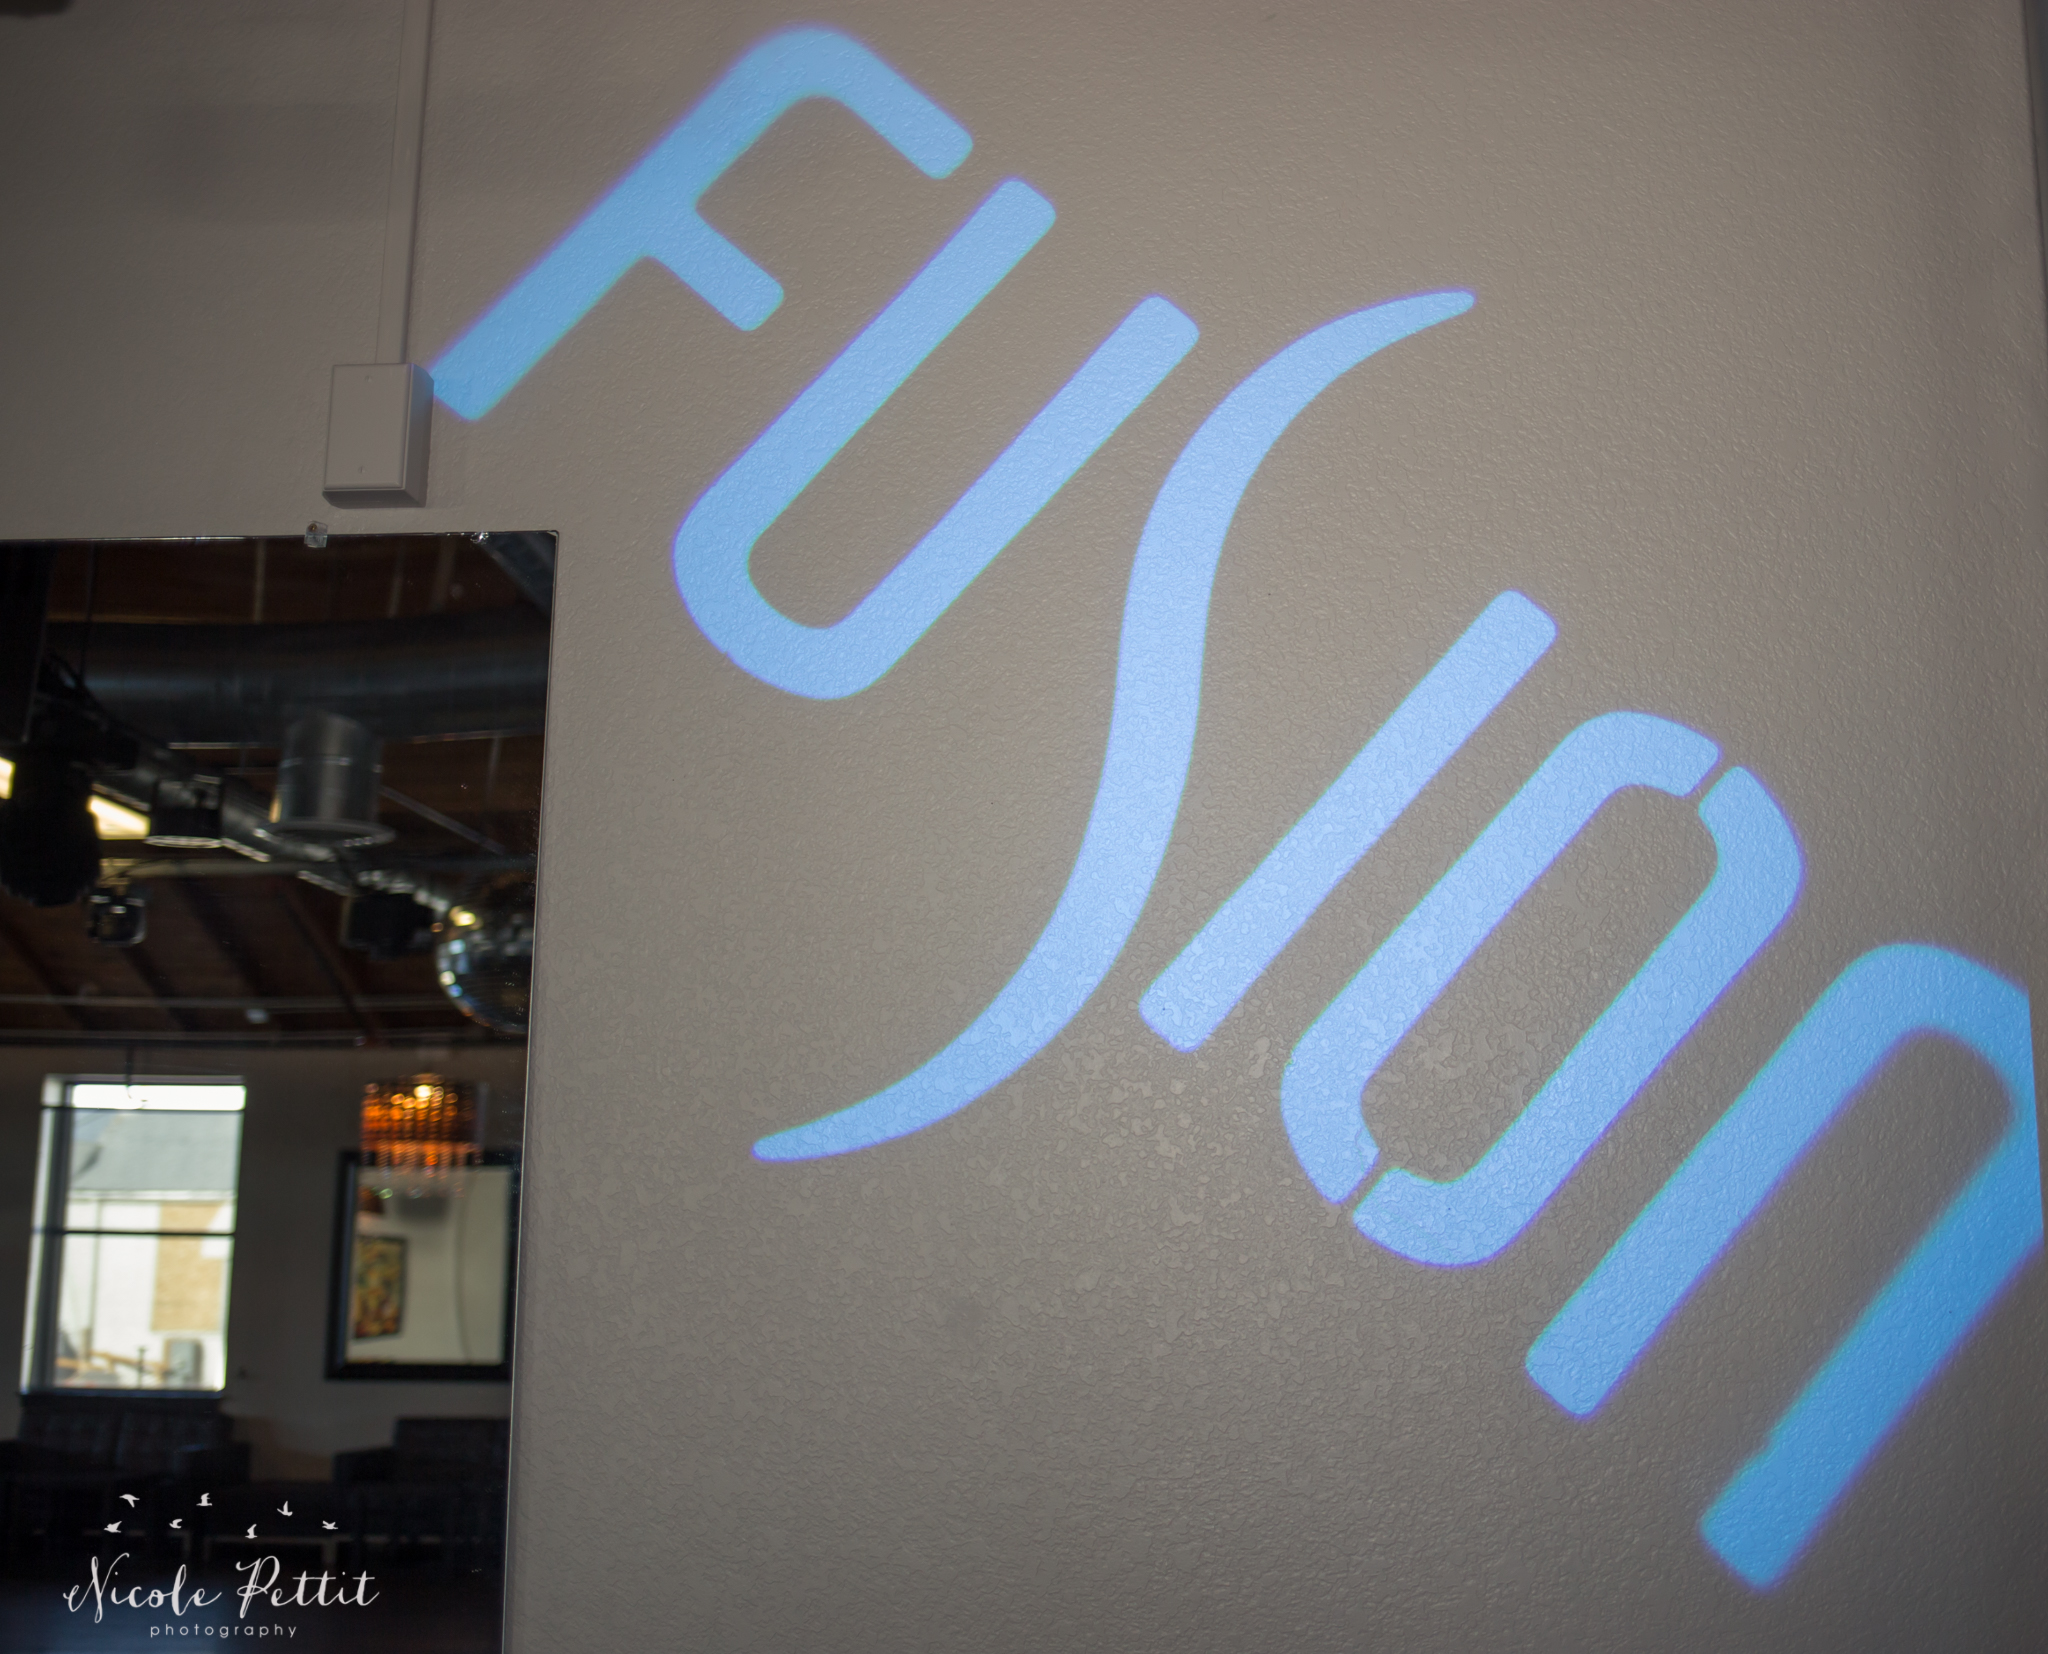 Fusion Nightclub logo projected on the wall at Fusion Nightclub in Fort Collins, Colorado